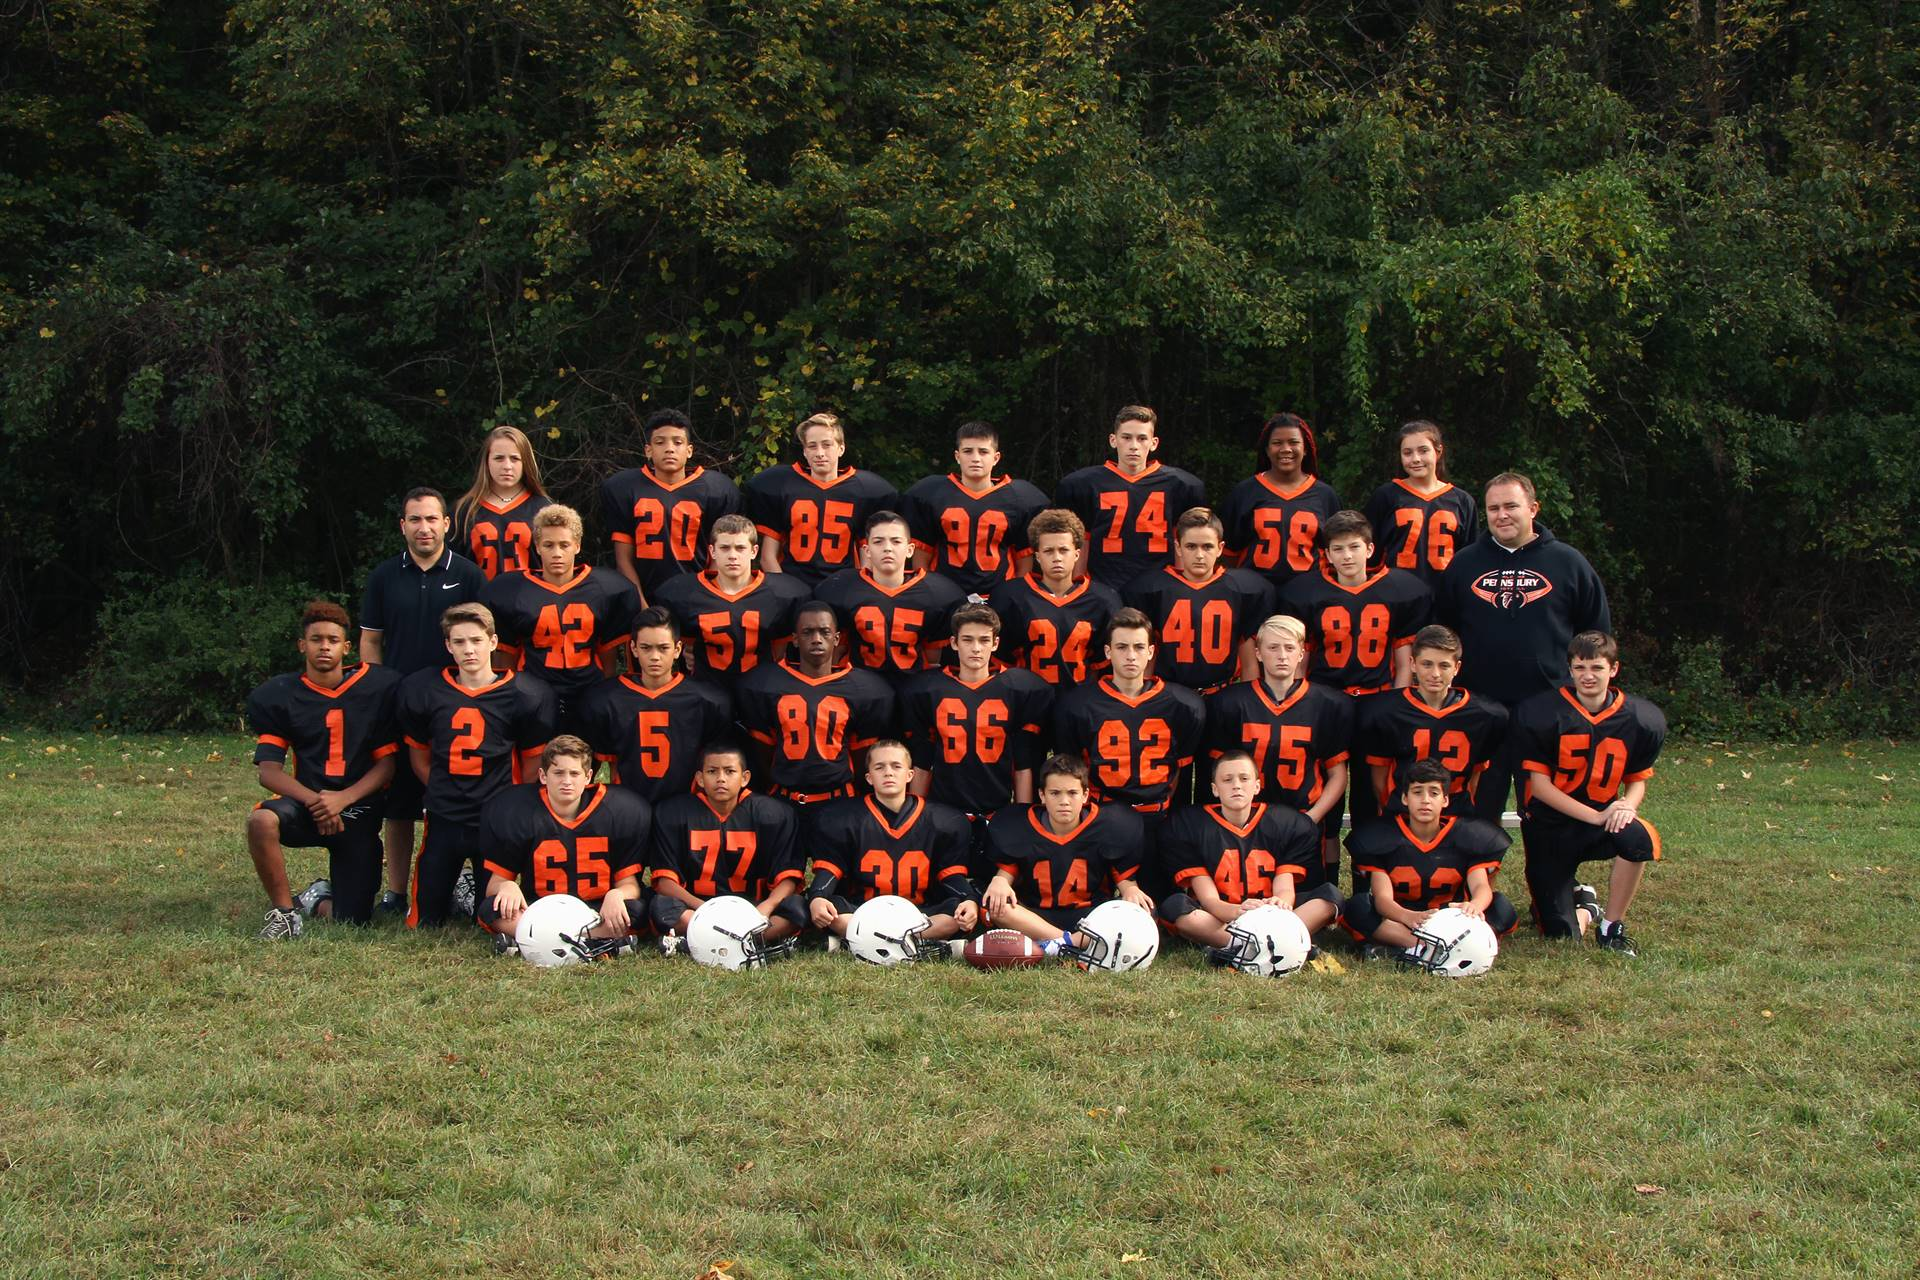 William Penn Football